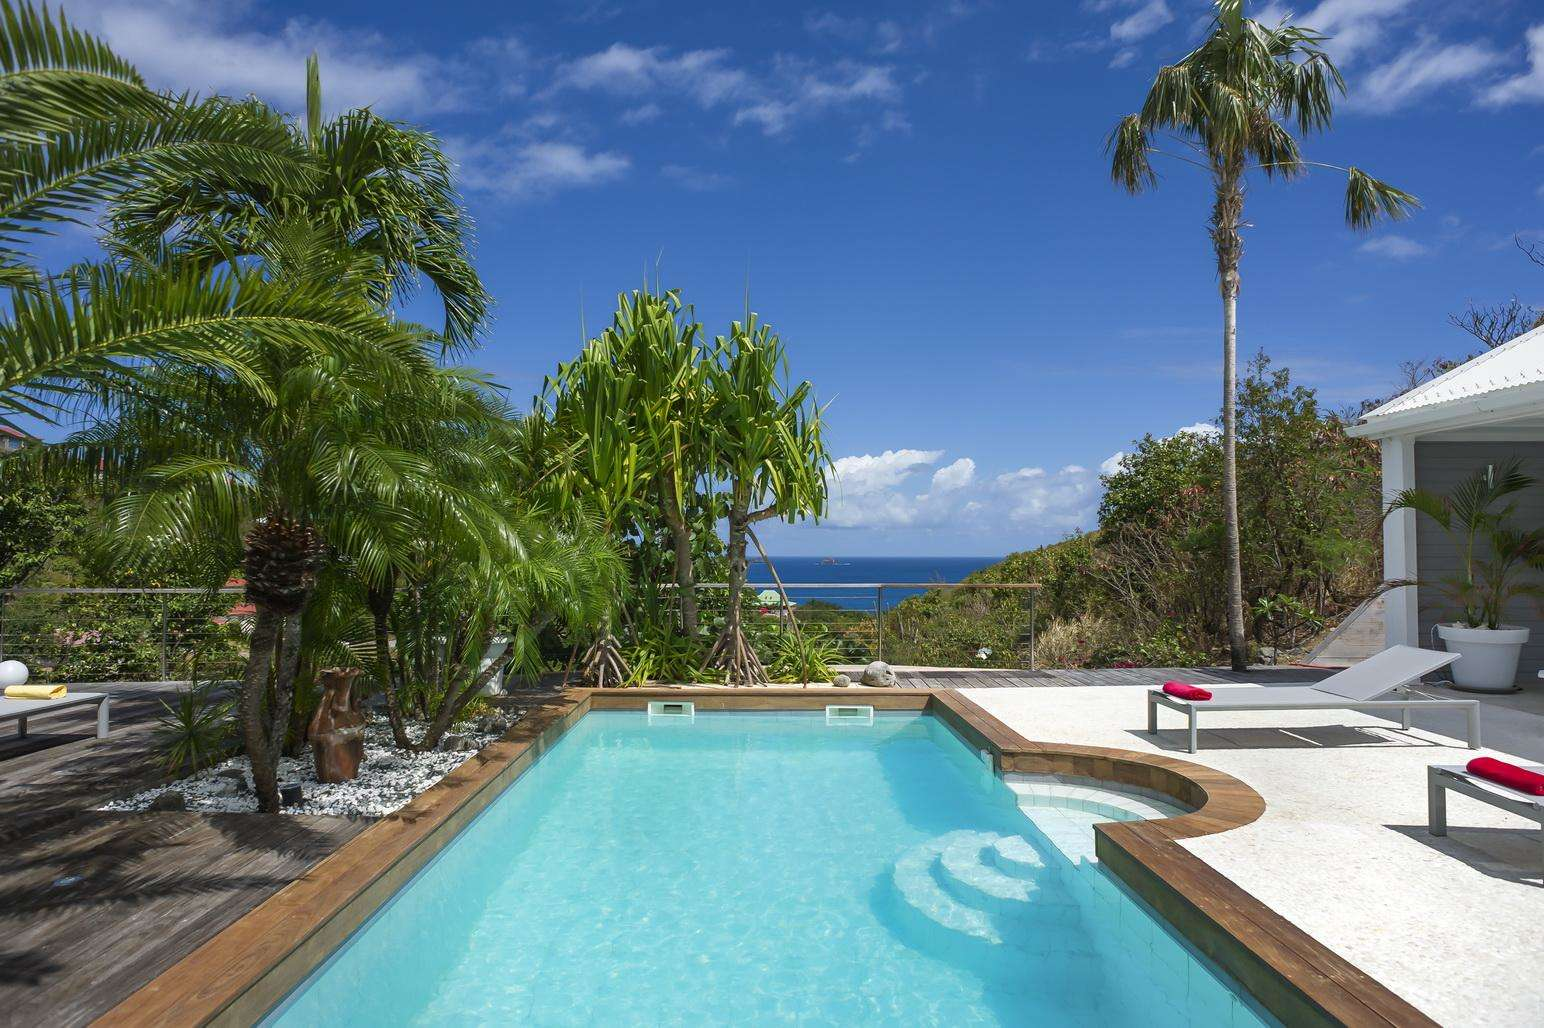 Luxury villa rentals caribbean - St barthelemy - Flamands - No location 4 - Ylang Ylang Villa - Image 1/22